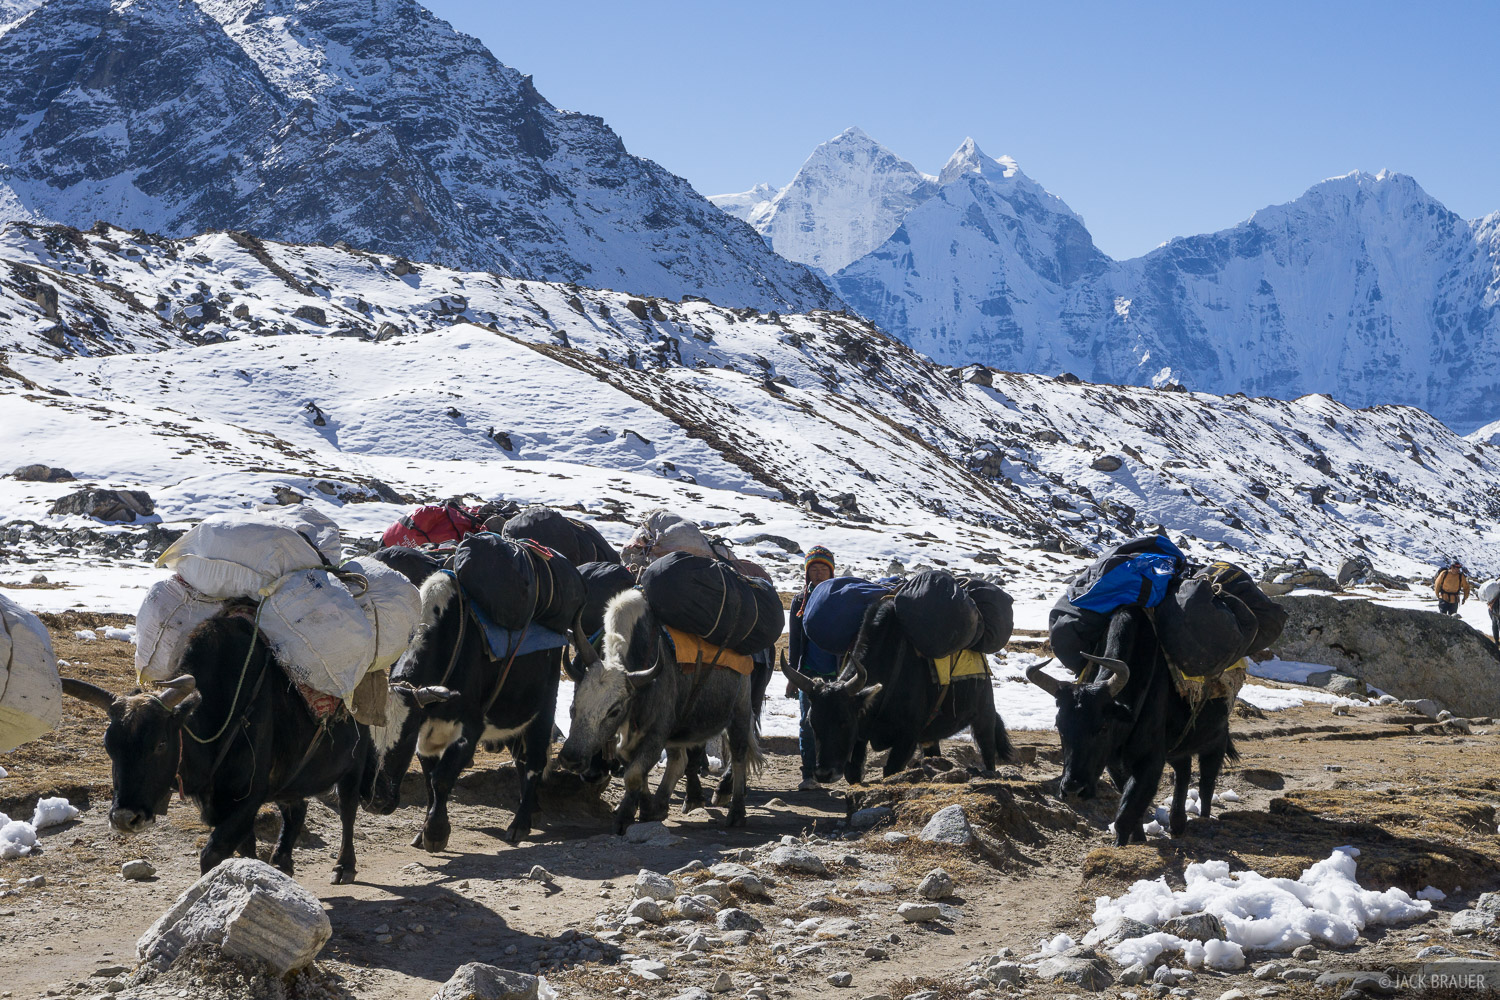 Himalaya,Khumbu,Nepal,yak, photo